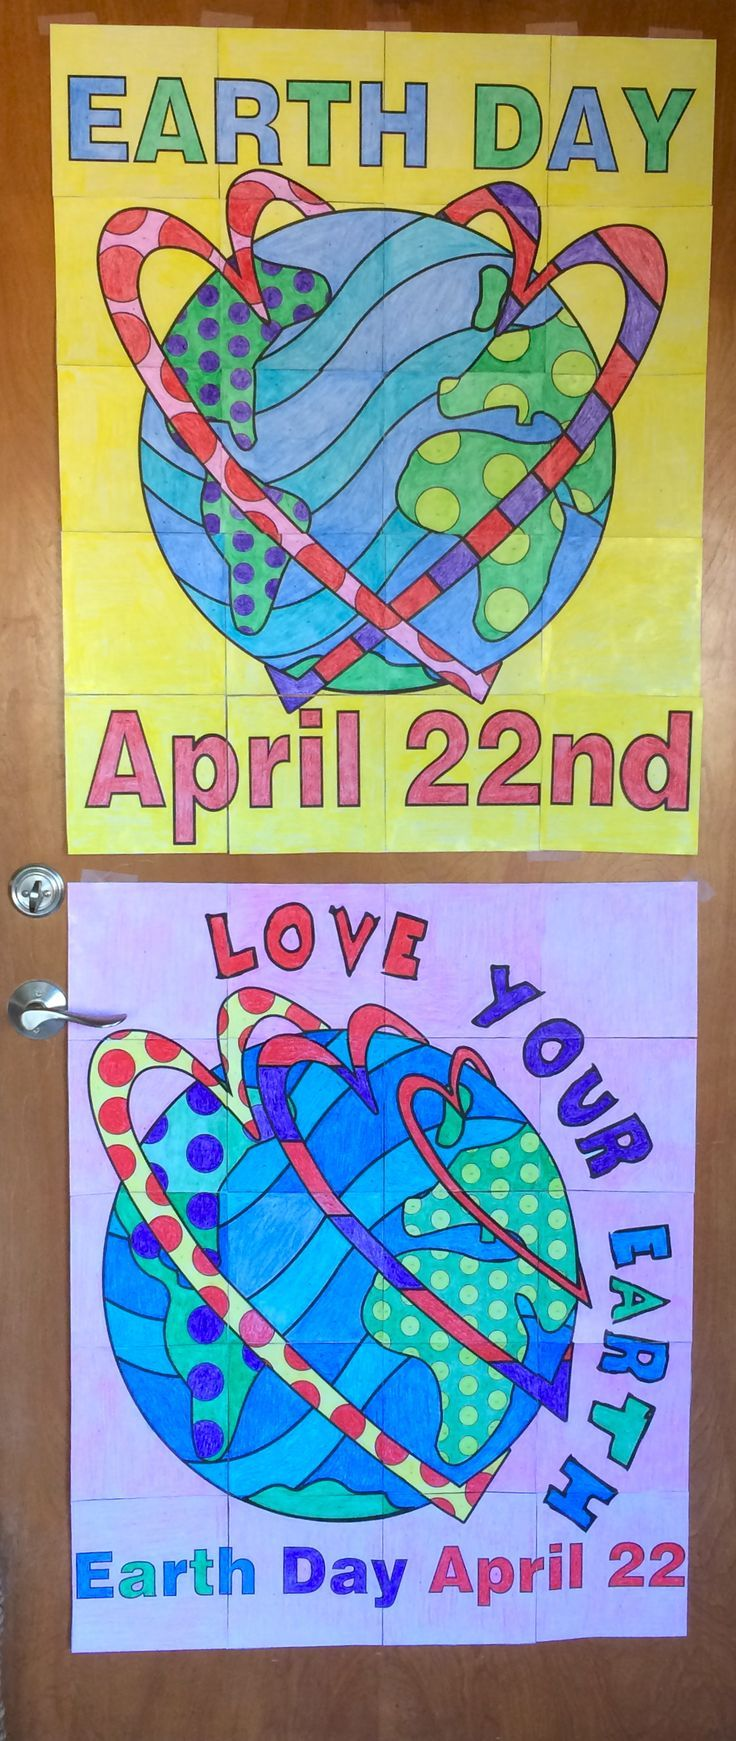 "Earth Day collaborative group posters! Each poster has 20 pieces with colors assigned per a color key. When finished the posters are approx. 29"" x 36"" each. Kid love working together to see the finished picture!"